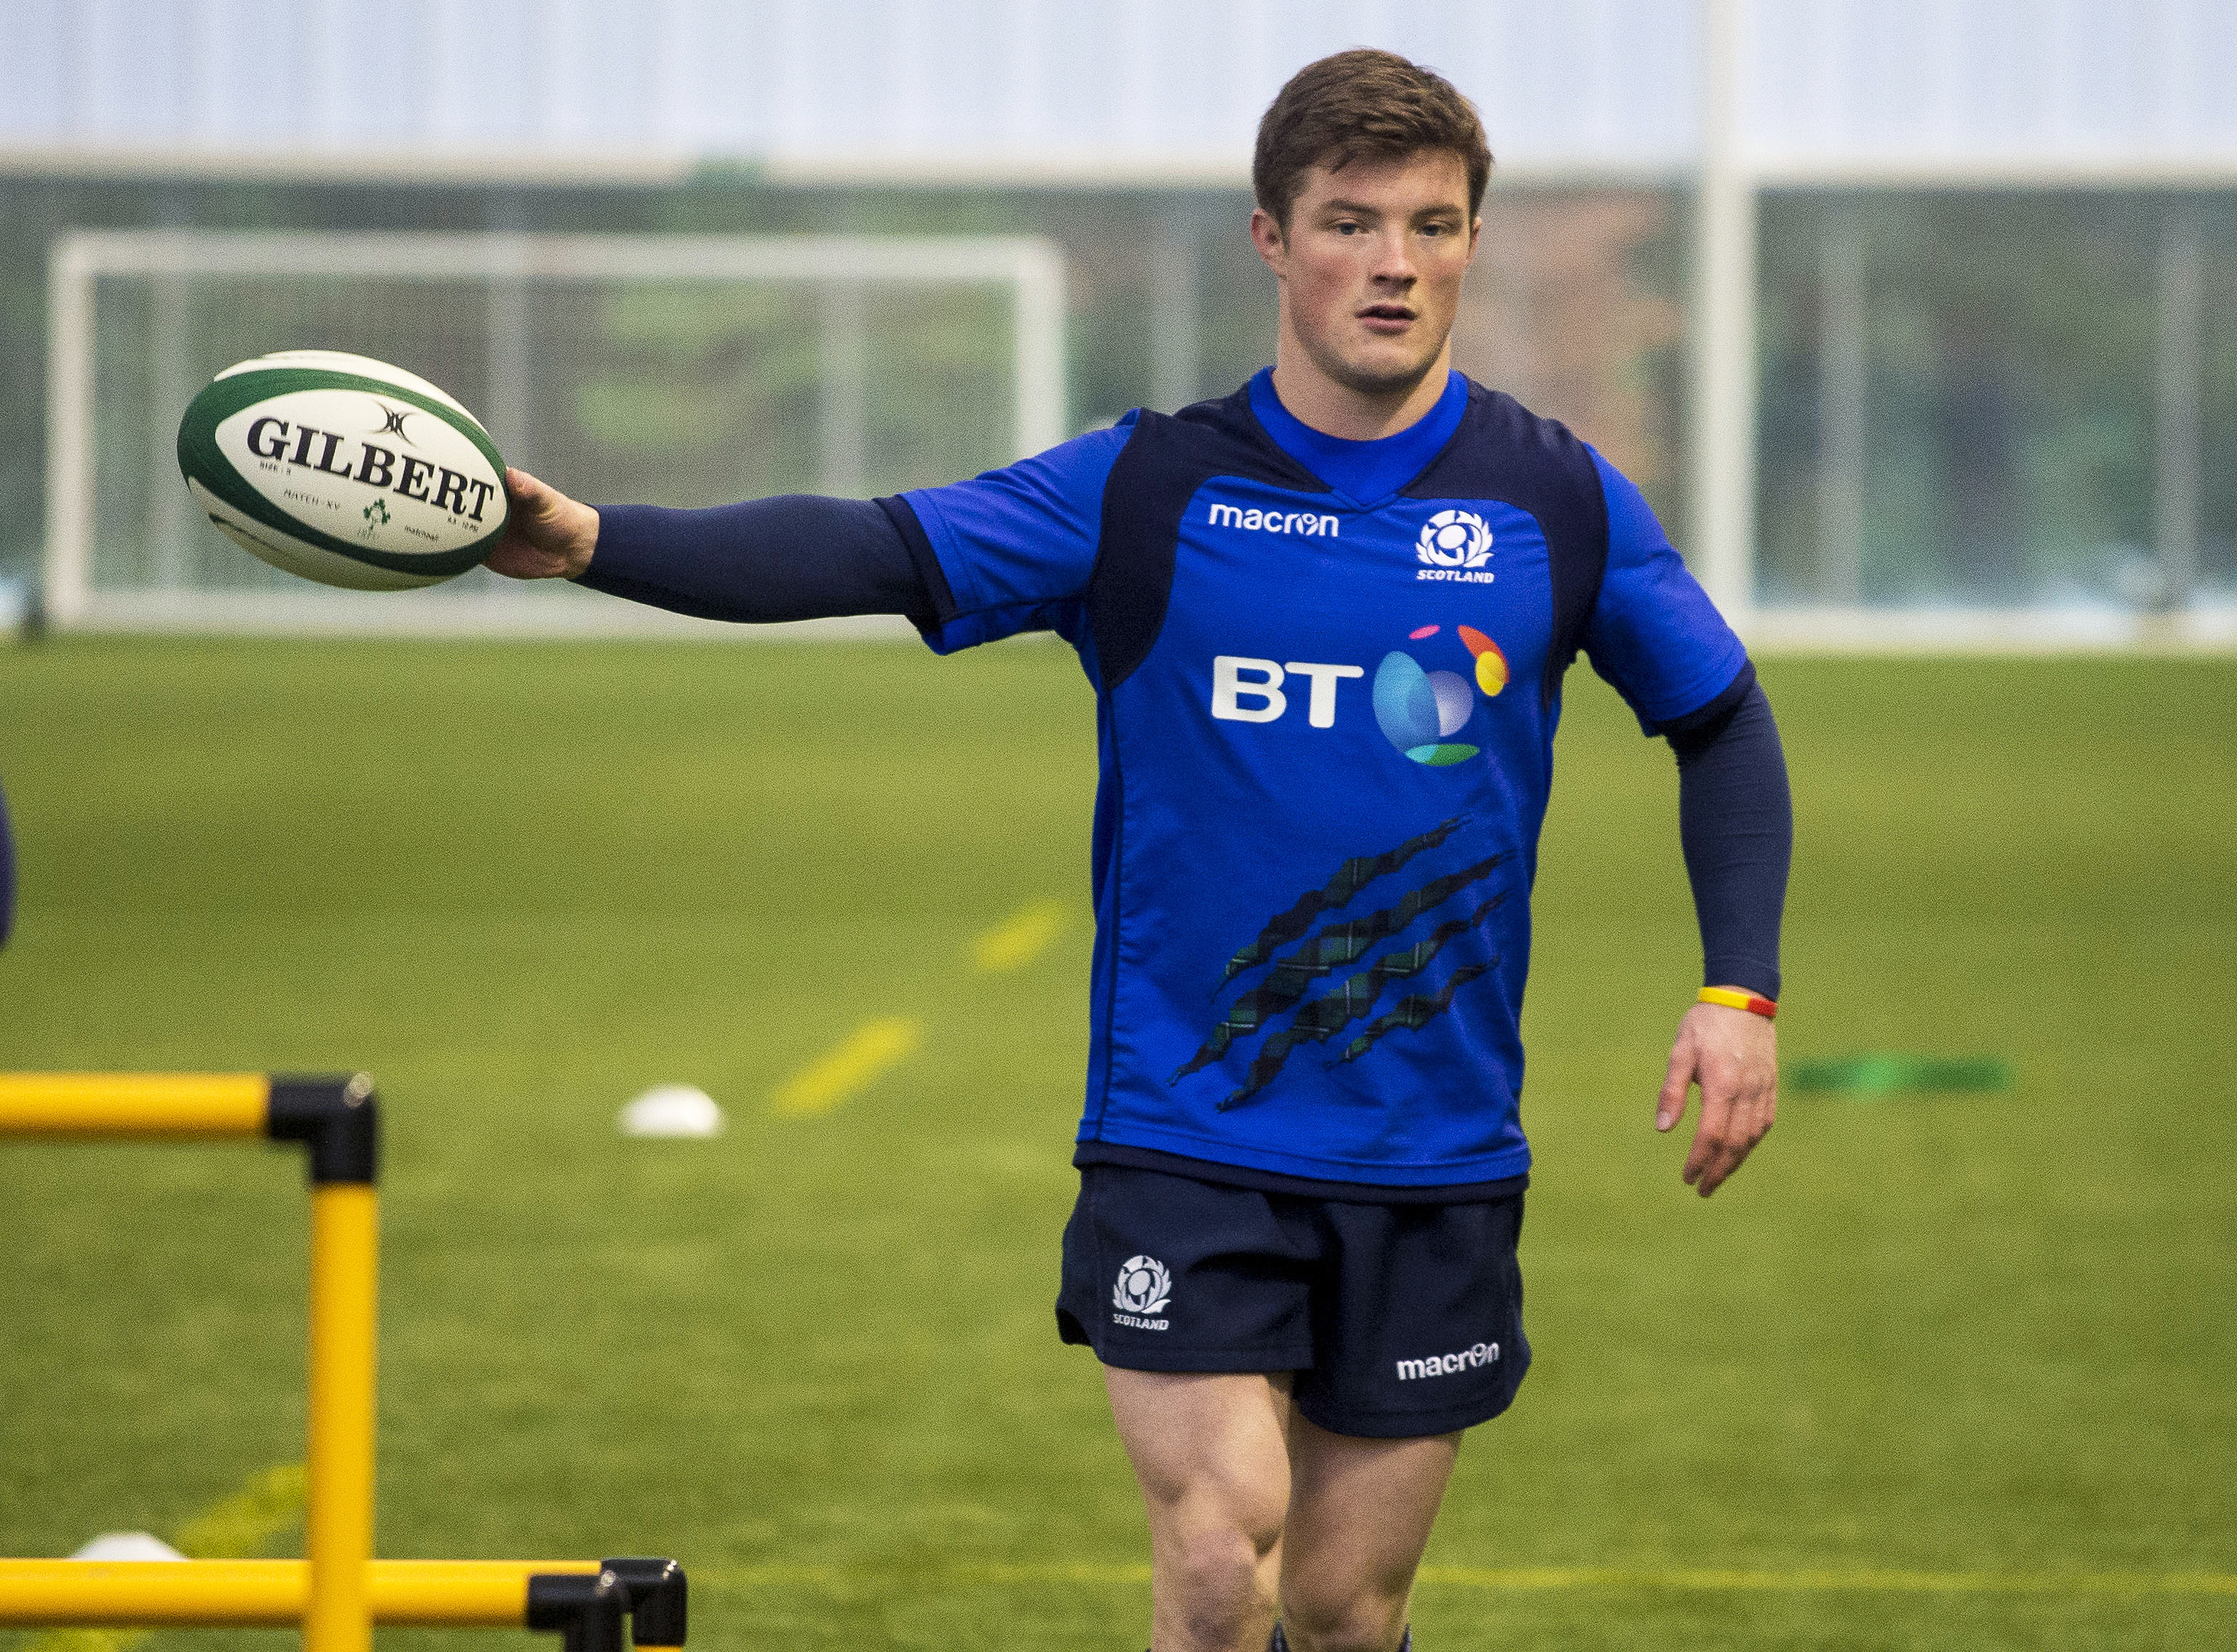 Hat-trick hero George Horne could be the coming man at scrum-half for Scotland.